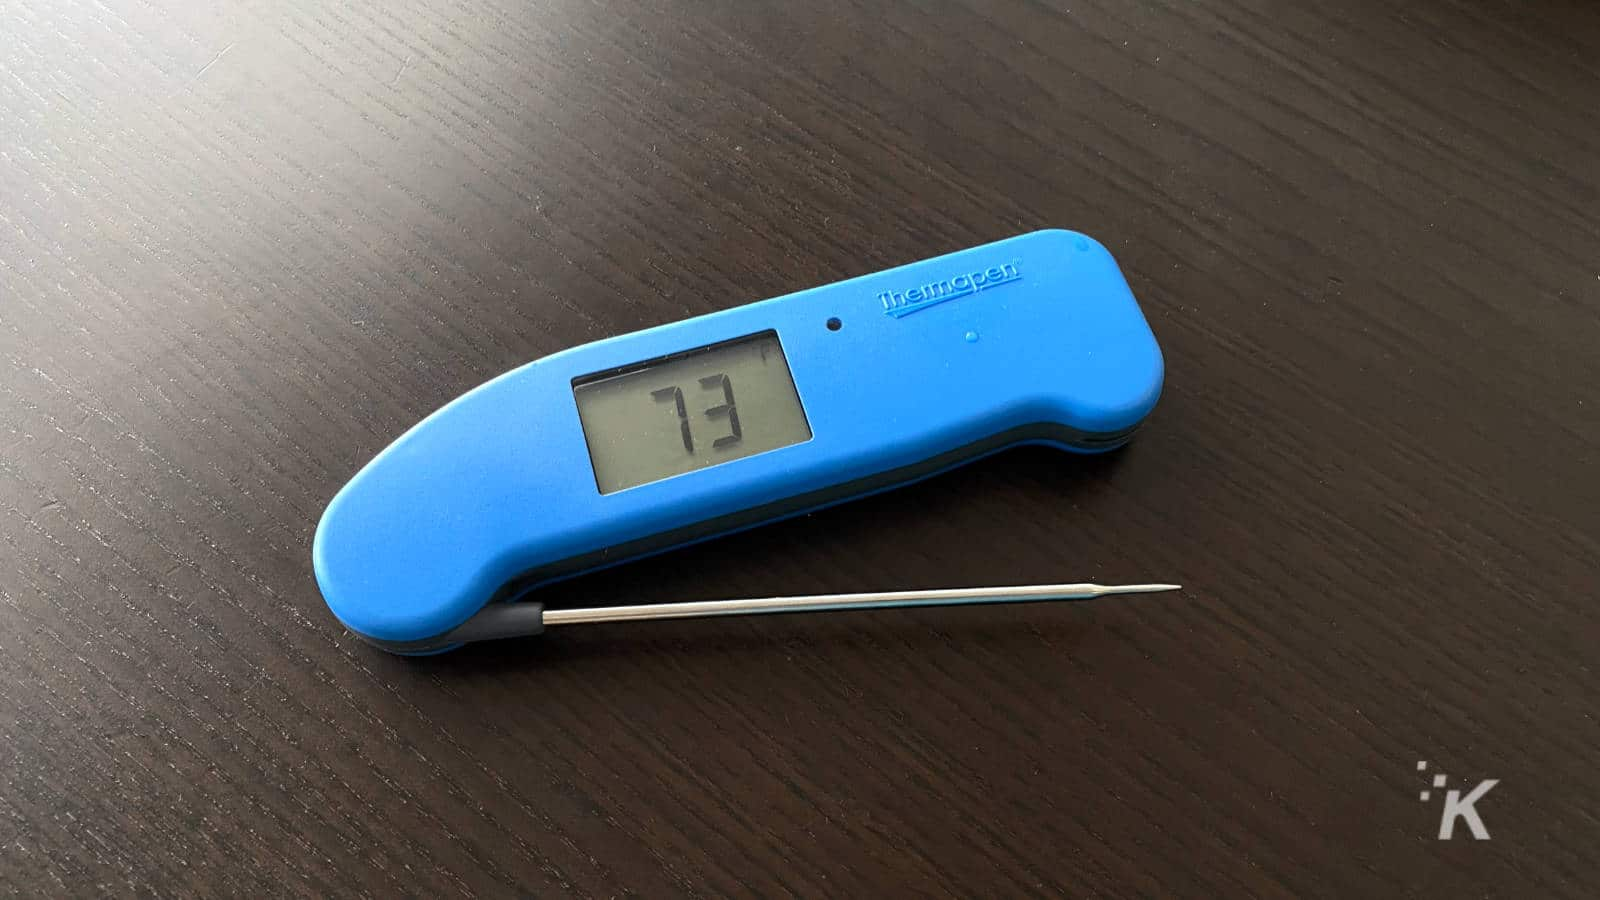 thermapen one on table, open to show it taking the air temperature at 72f